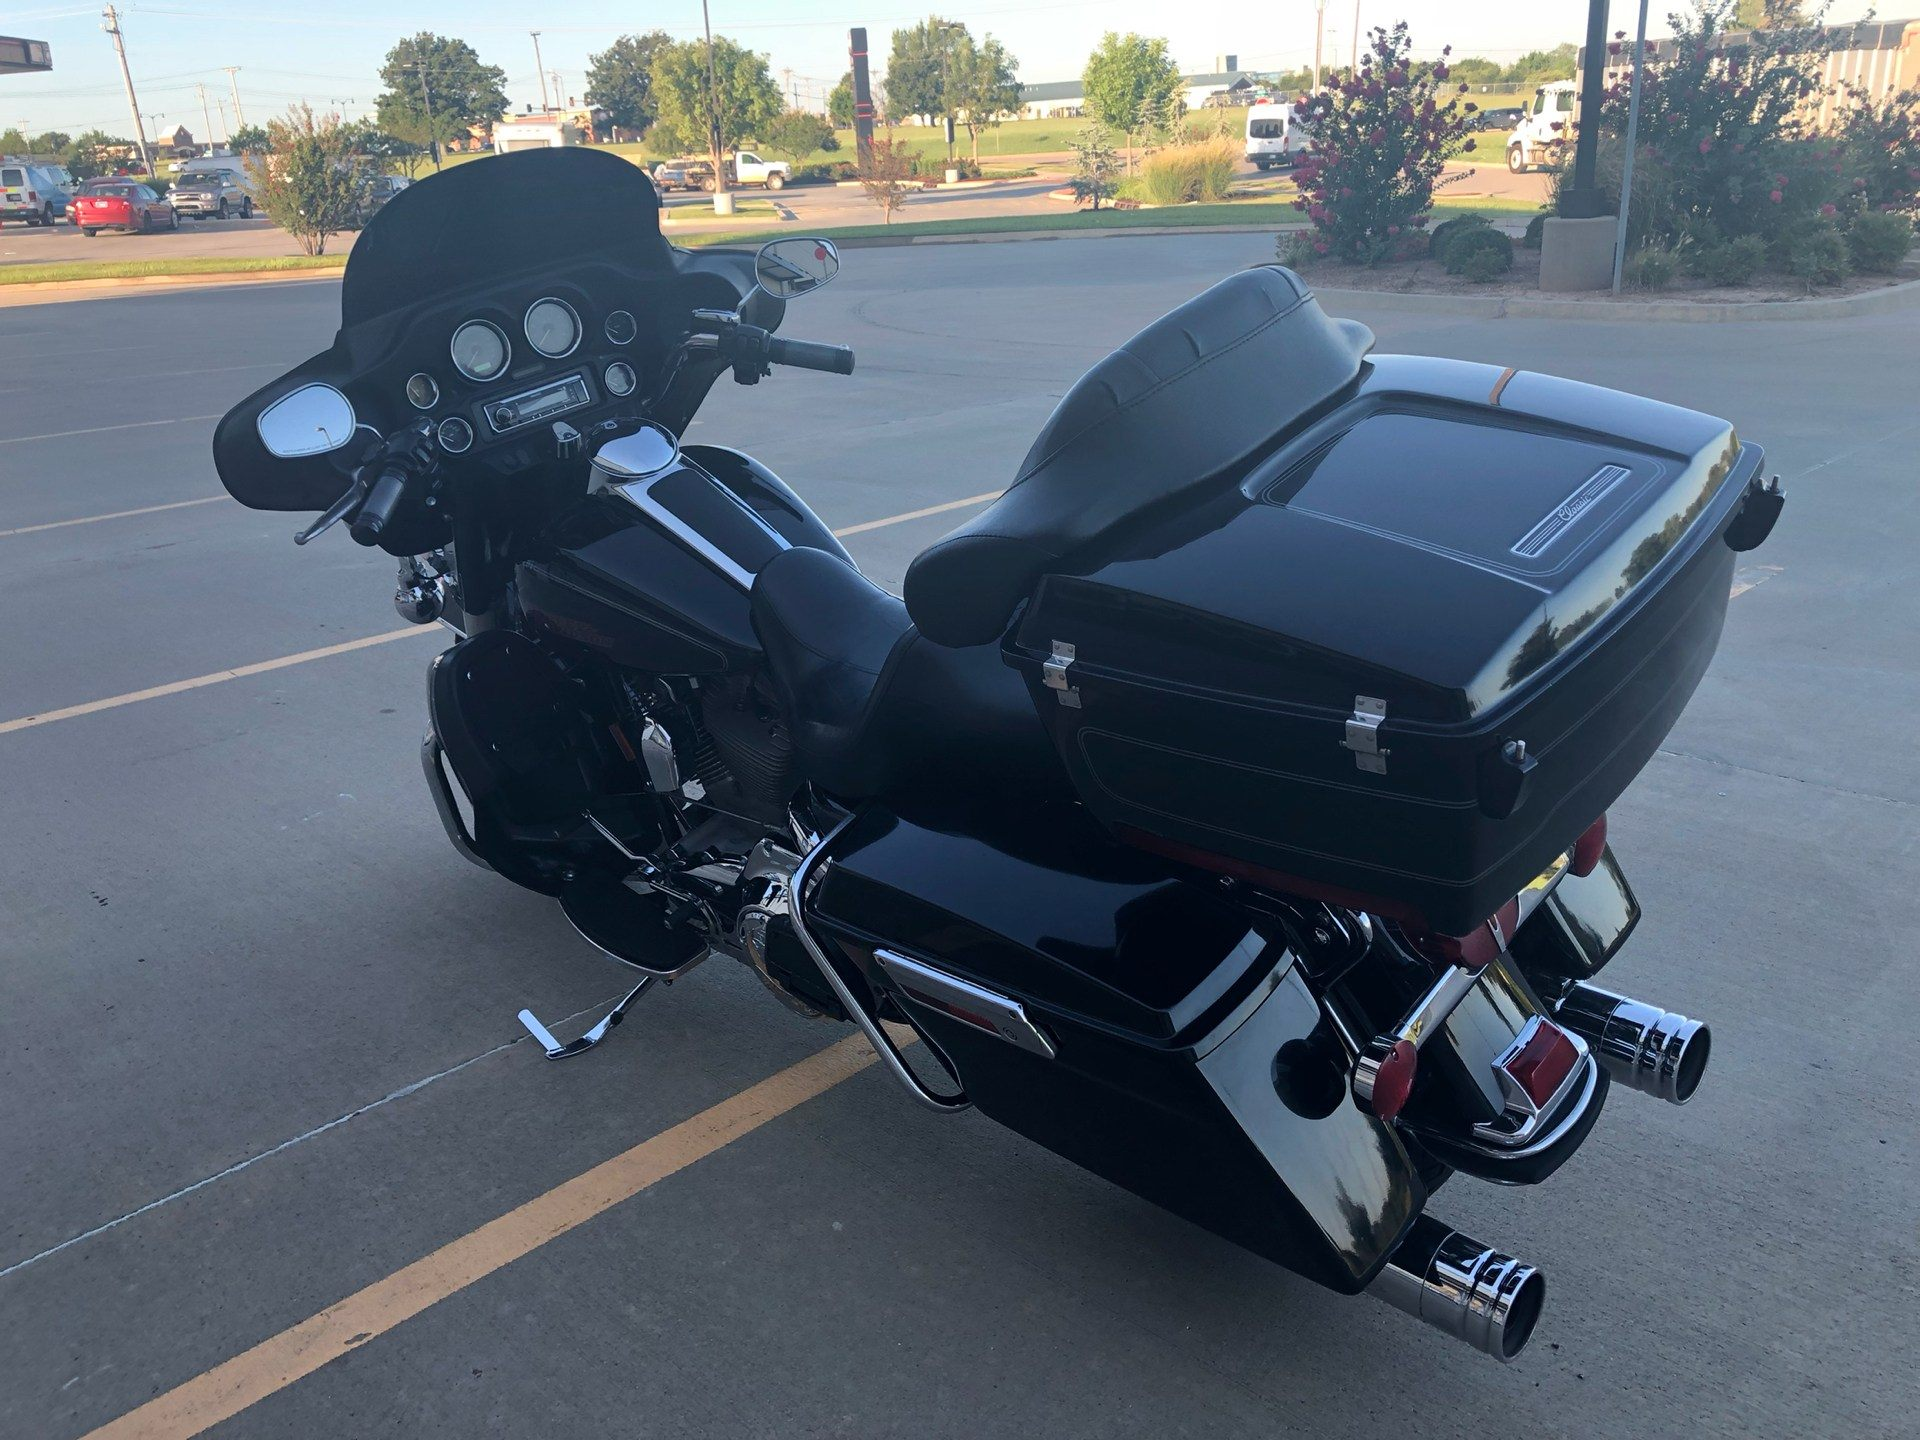 2008 Harley-Davidson Electra Glide® Standard in Norman, Oklahoma - Photo 4